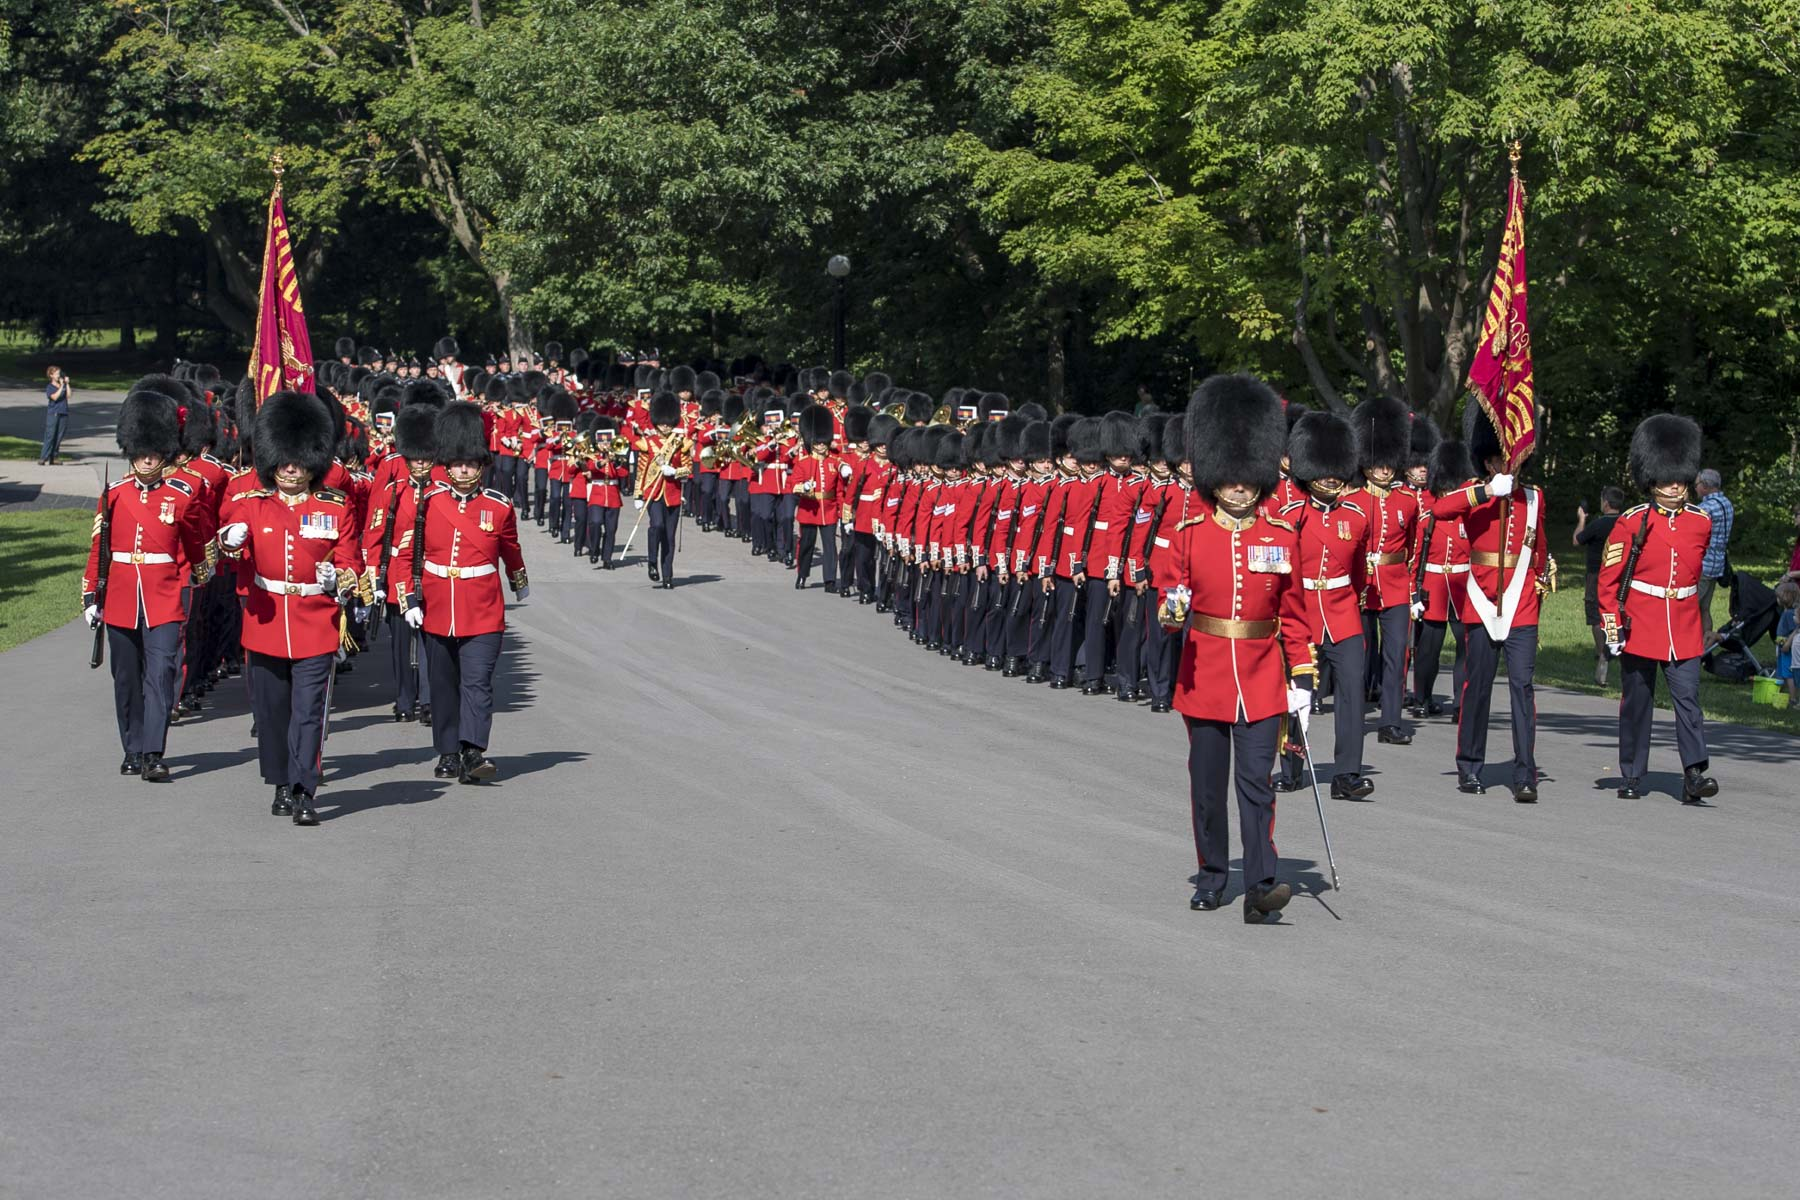 On Monday August 20, 2018, the Governor General and Commander-in-Chief of Canada invited the public to join her for the annual Inspection of the Ceremonial Guard on the grounds of Rideau Hall.